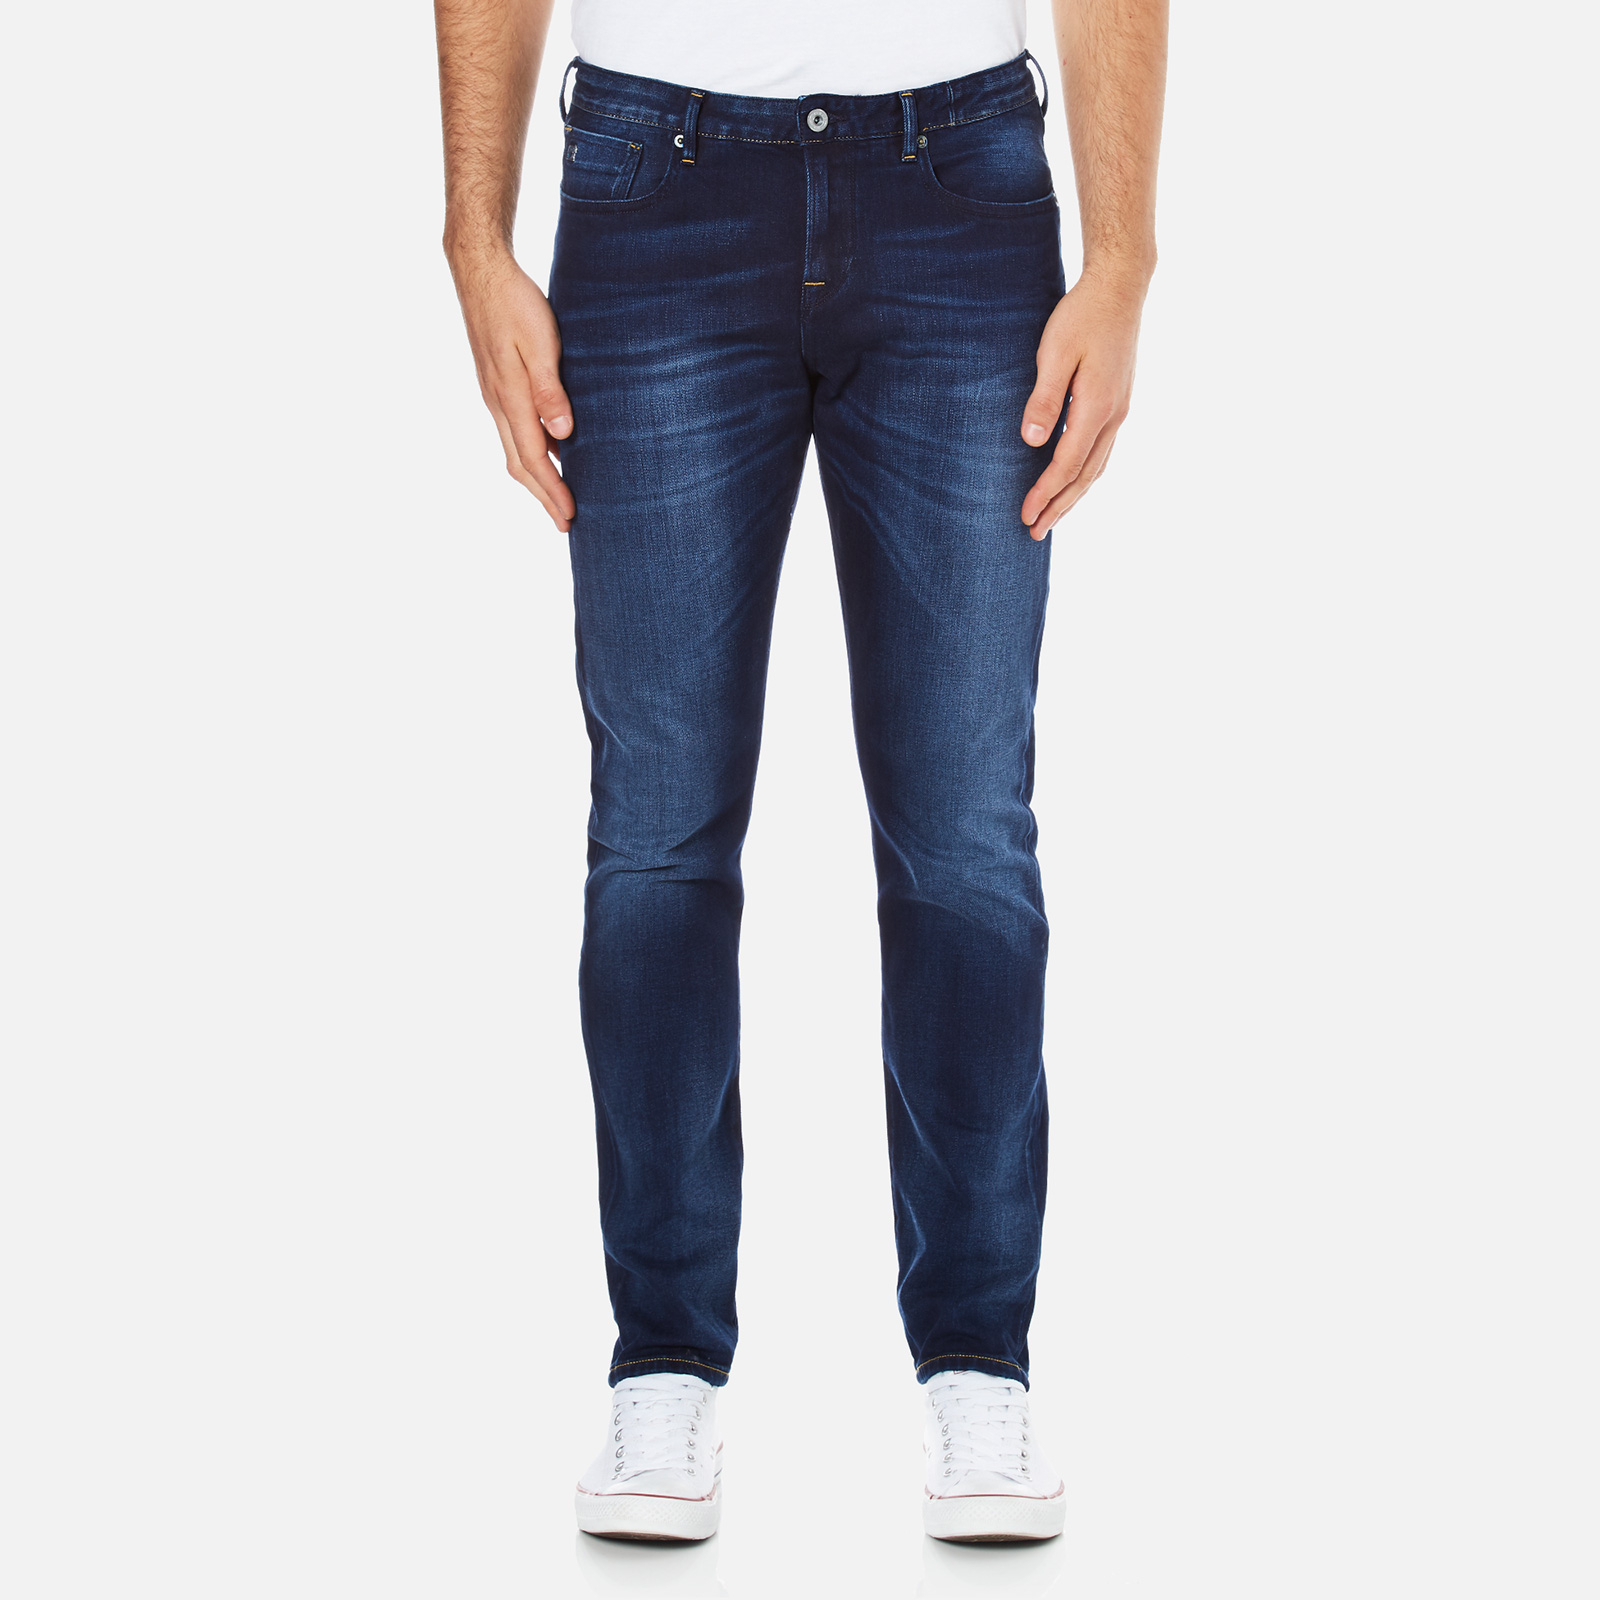 Scotch & Soda Men's Catch 22 Tapered Jeans - Touch & Move